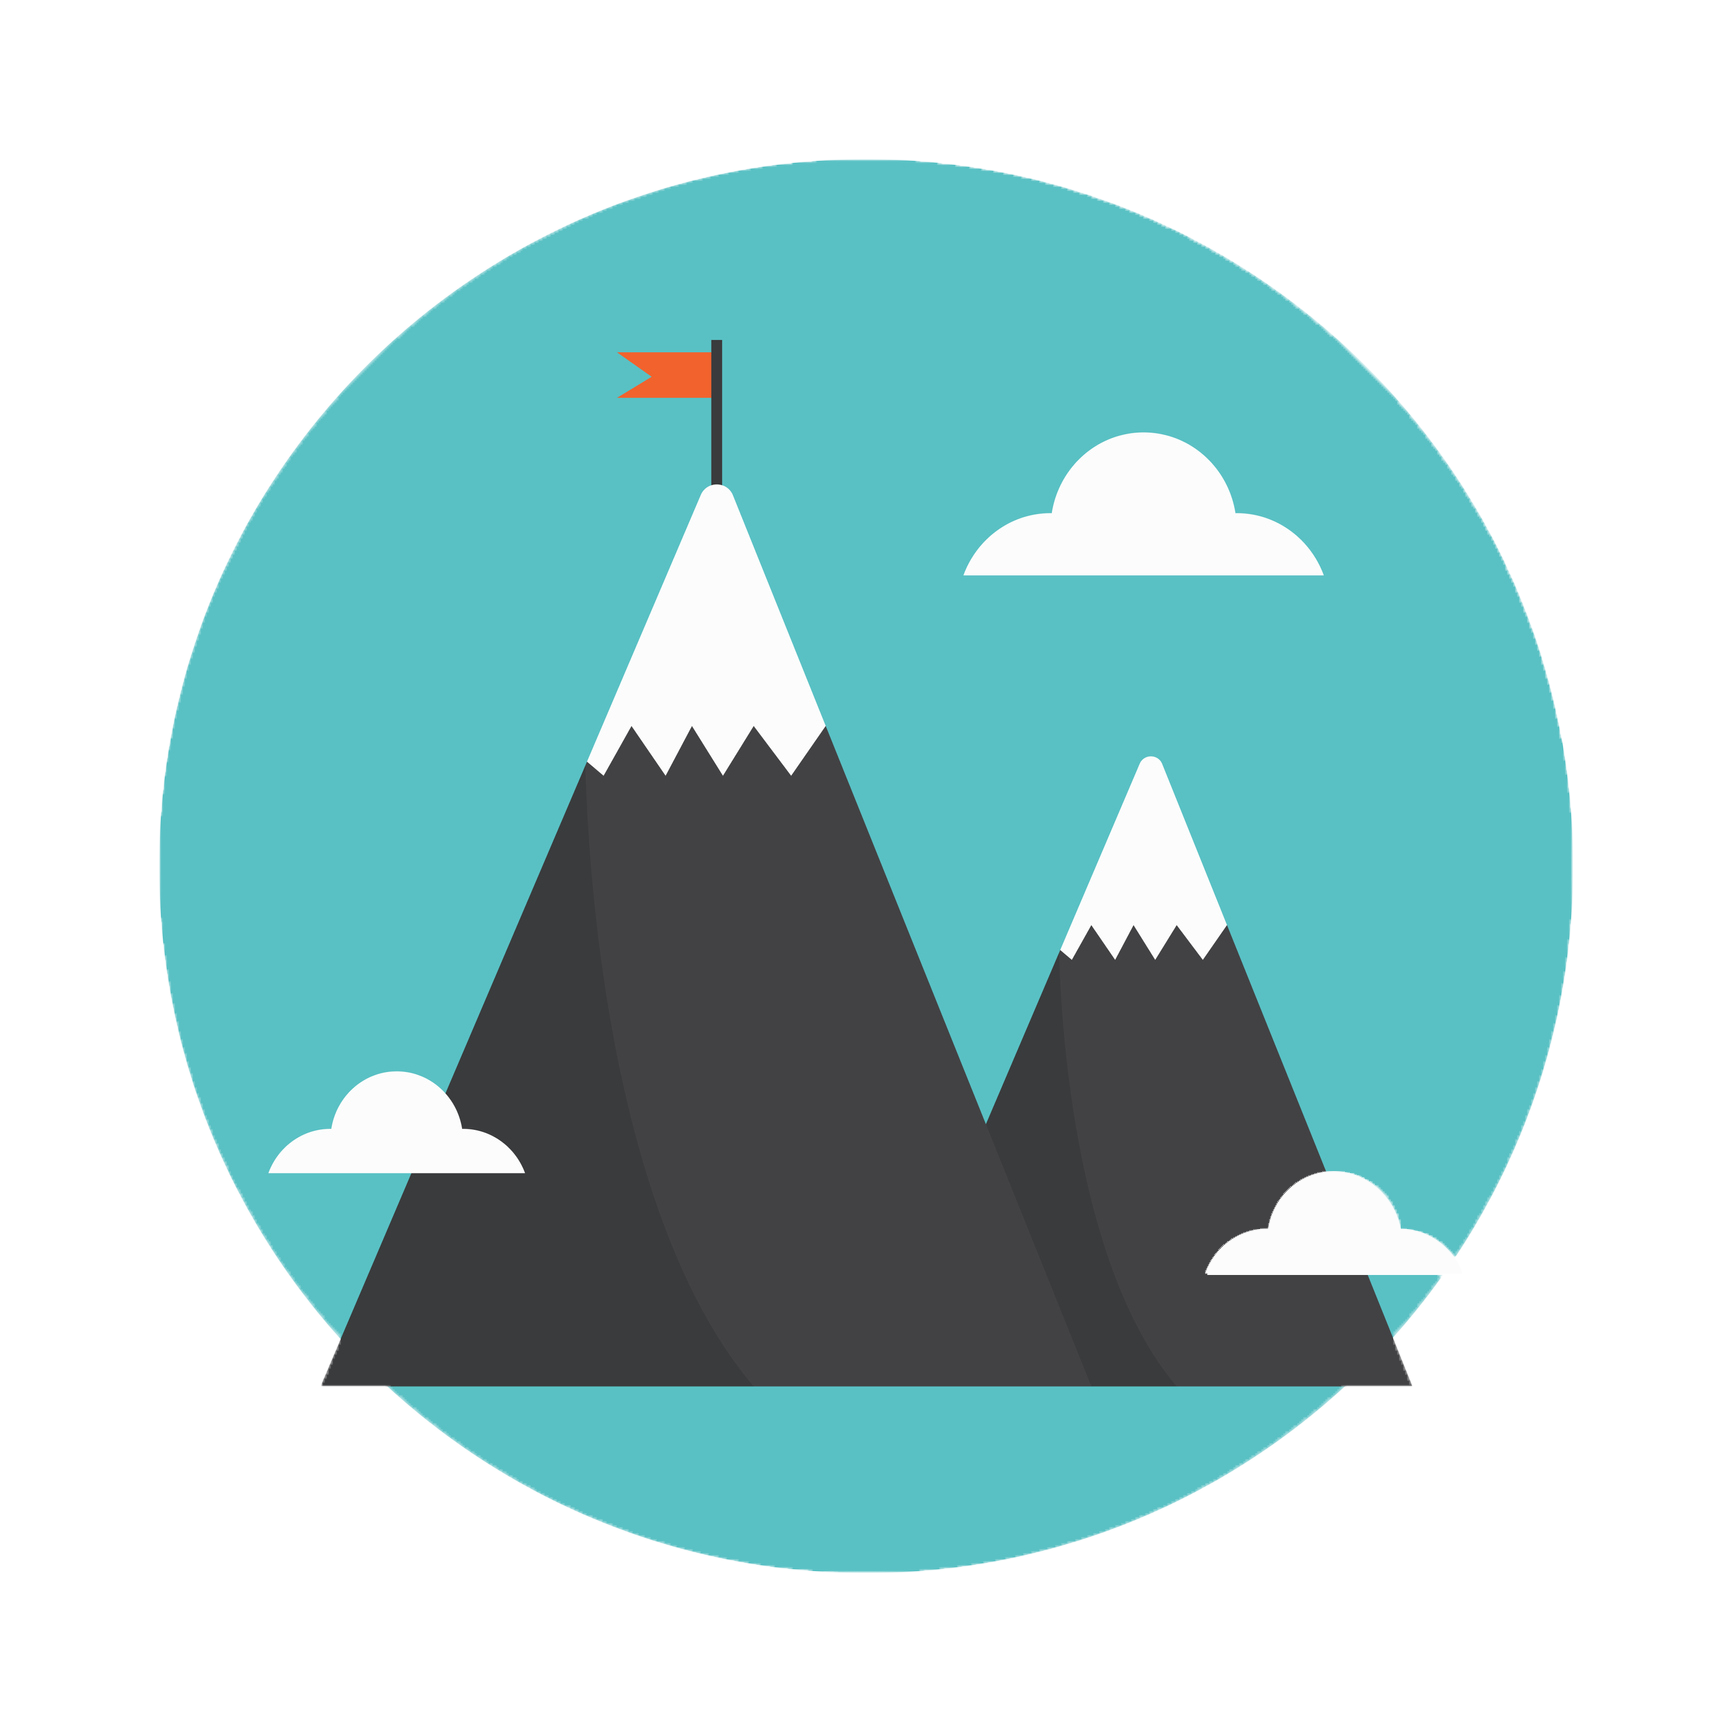 Mountain with ice caps and flag on top